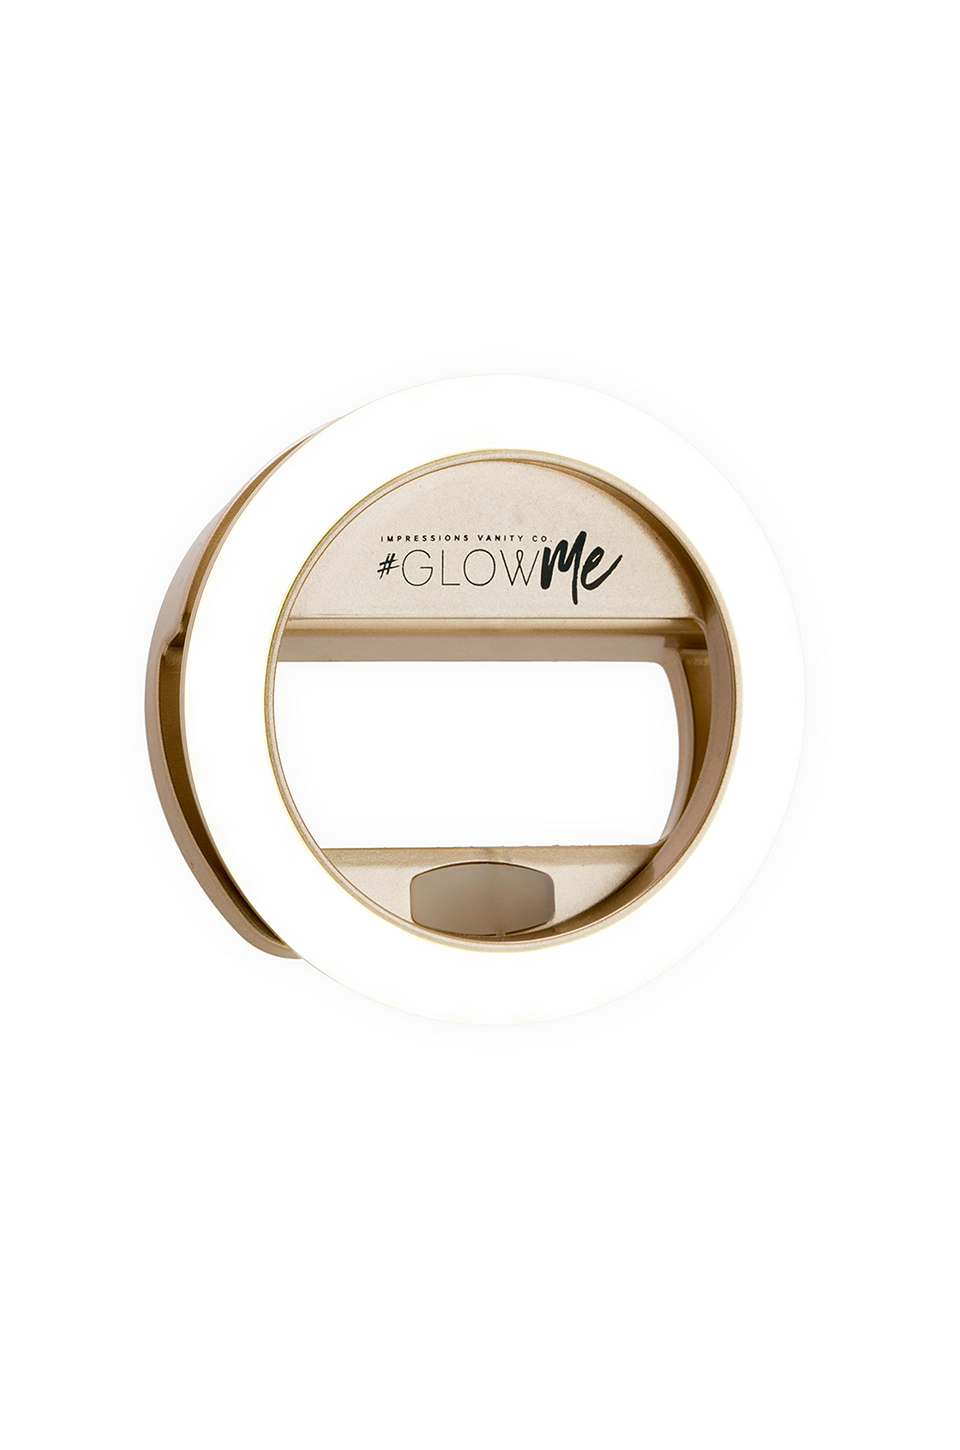 Impressions Vanity GlowMe 2.0 USB Rechargeable LED Selfie Ring Light in Champagne Gold